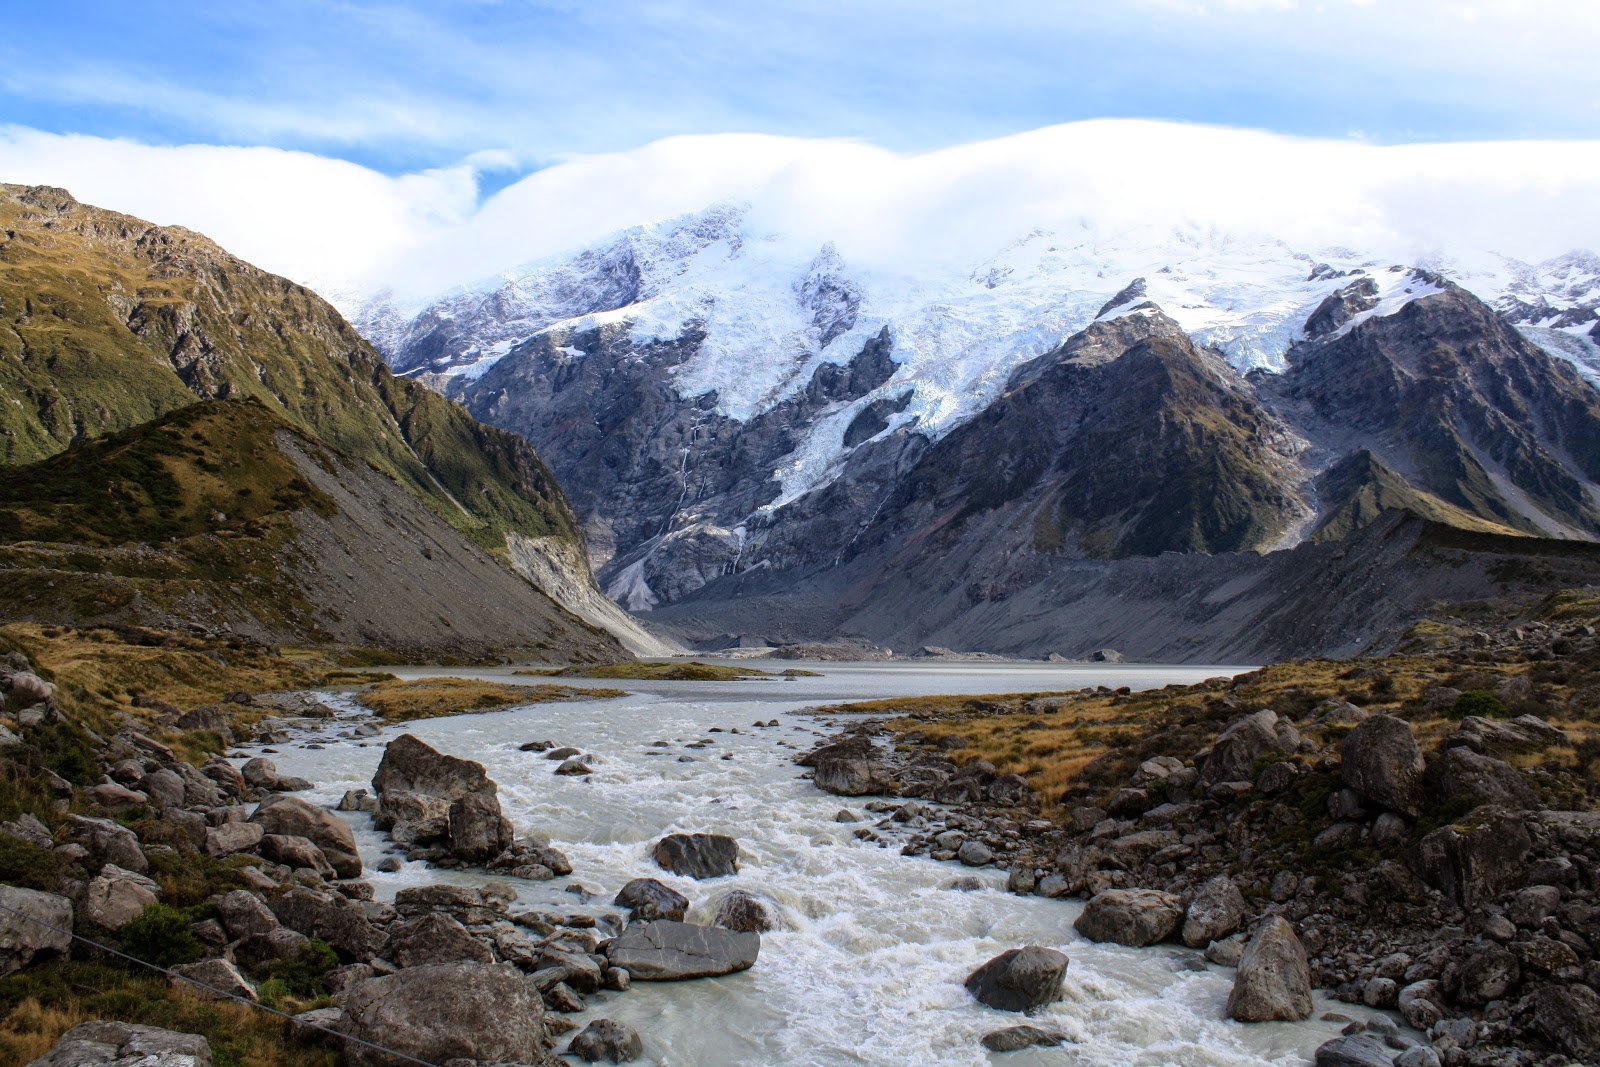 There's a river, with some stones, and a glacier.